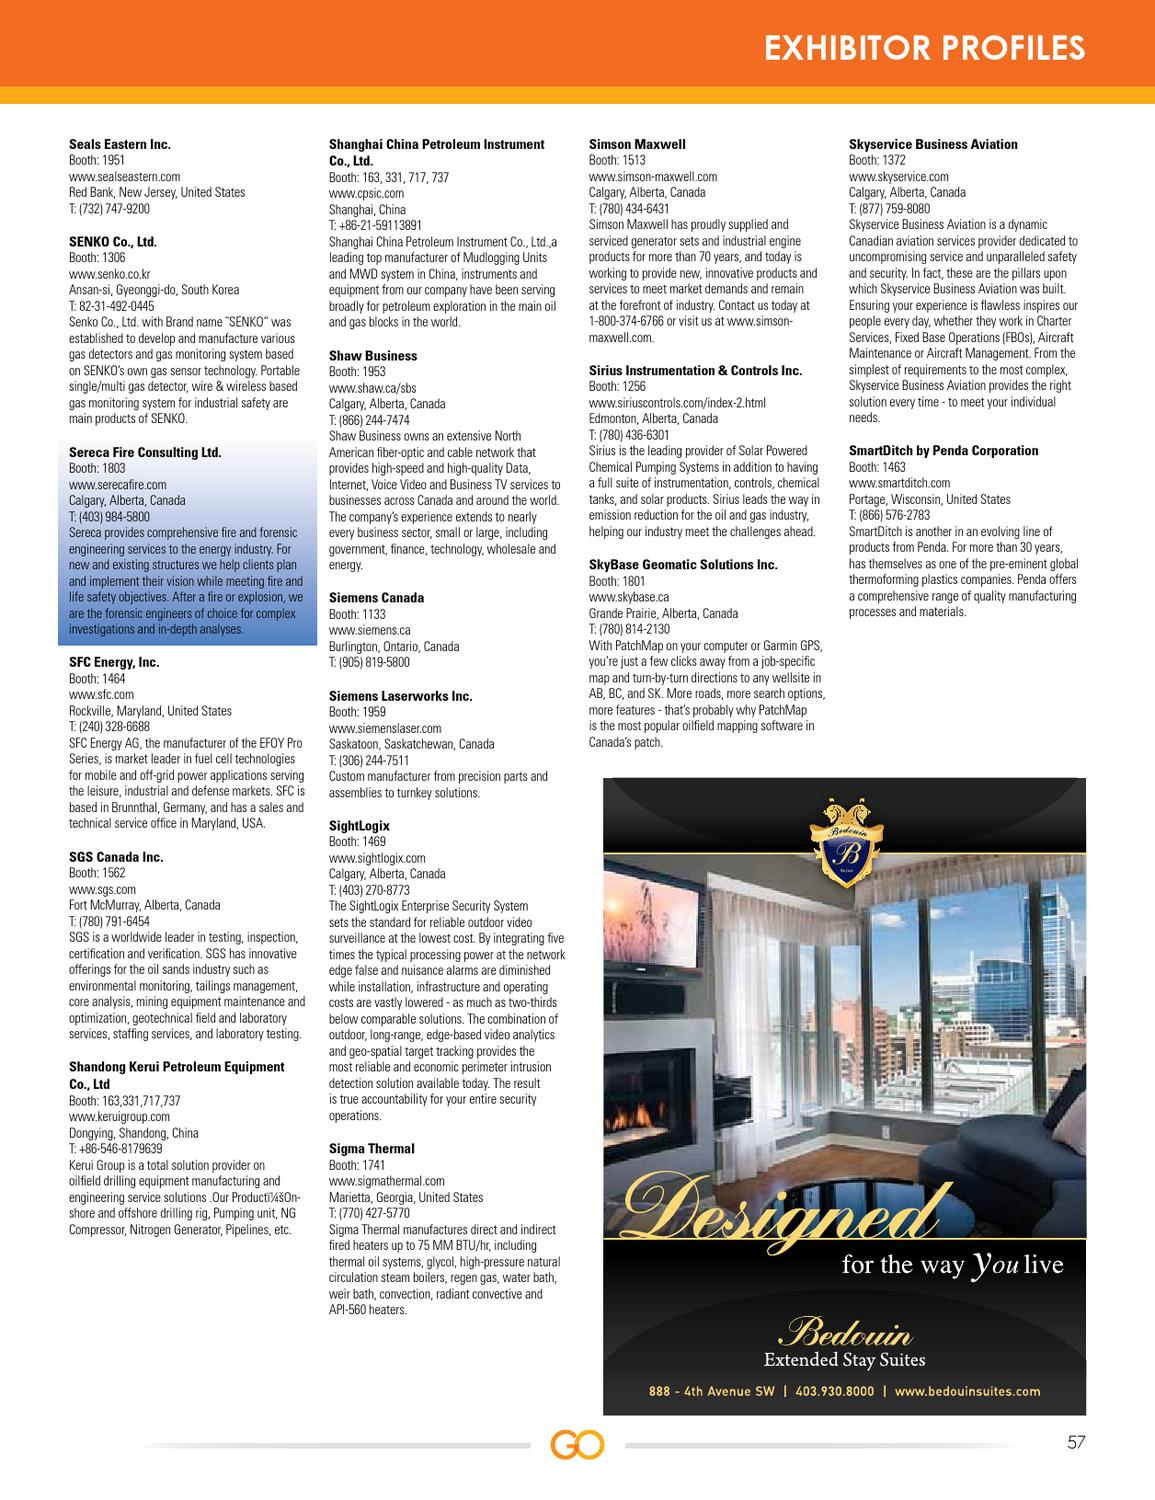 Gas & Oil Expo 2011 Event Guide by dmg events - issuu